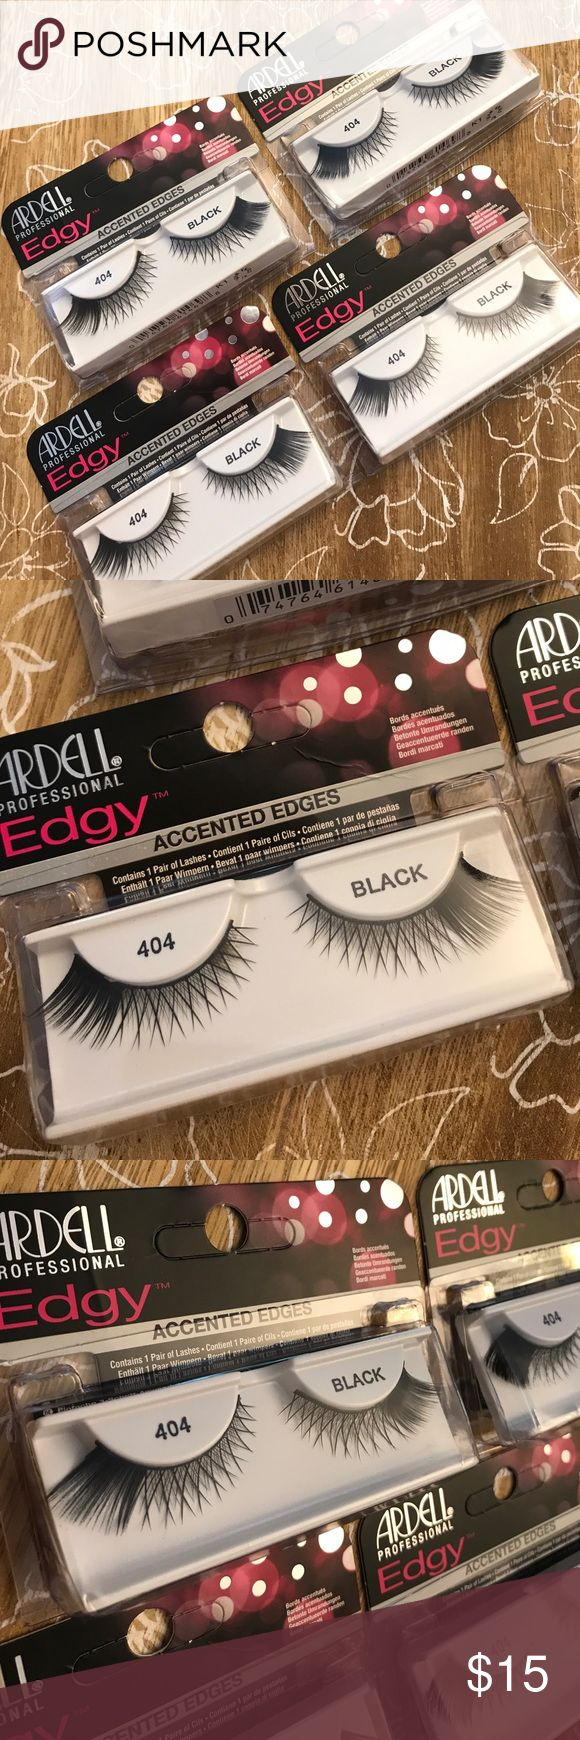 """Ardell Professional edgy 404 Black eye lashes """" with accented edges"""". new Edgy lash is a unique combination of natural strip lashes with accent edges. Each style is designed with a tapered inside with an accentuated edgy flare, to create that glam rock star look. (( 4 pack -  new in box )) STYLE:  Natural  Glamour SHAPE:  Small Eyes  Large Eyes  Round Eyes ardell Makeup False Eyelashes"""